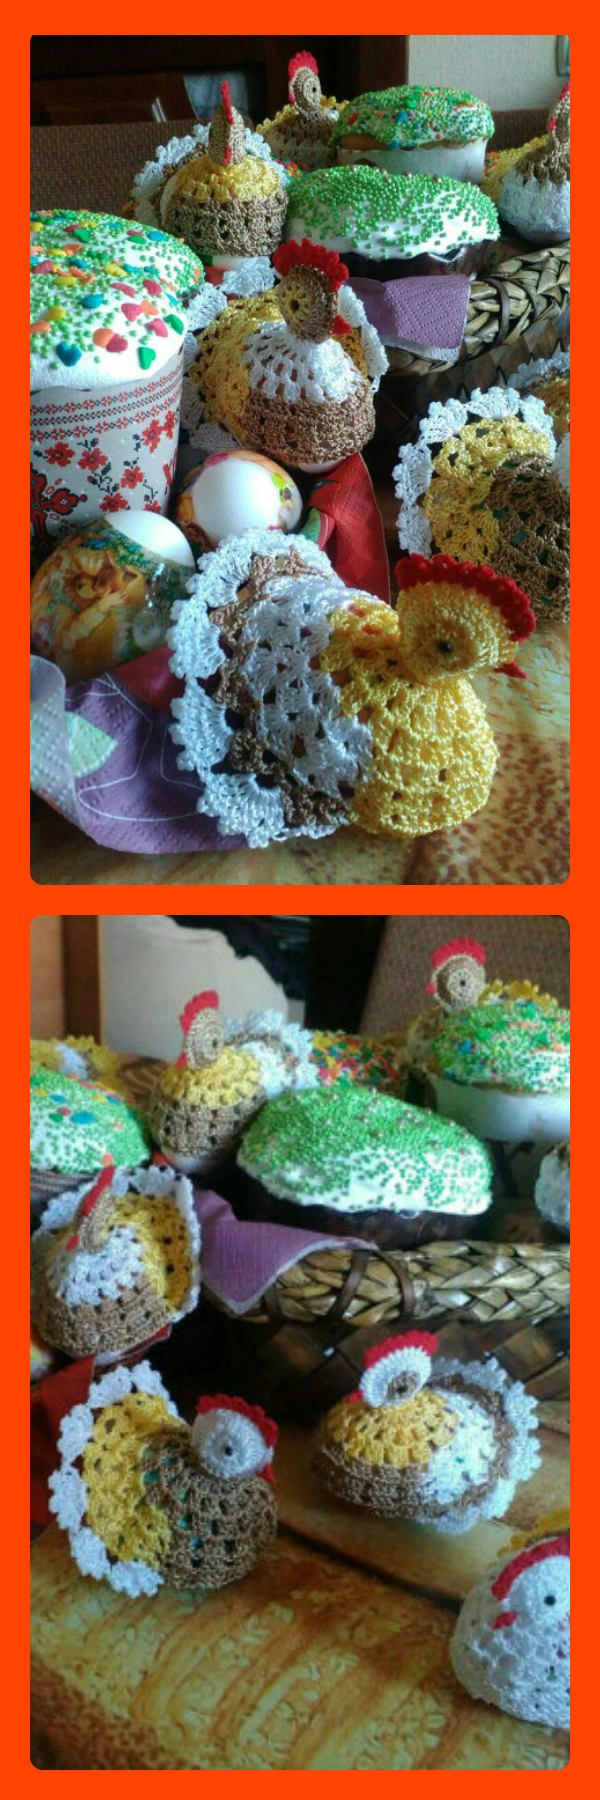 Excited to share the latest addition to my #etsy shop: Easter gift idea Easter crochet hen Easter crochet chicken Easter decor Crochet egg holders Crochet egg cup Spring chicken Handmade Egg Cosy http://etsy.me/2DRVe10 #housewares #easter #birthday #eastergift #easterg